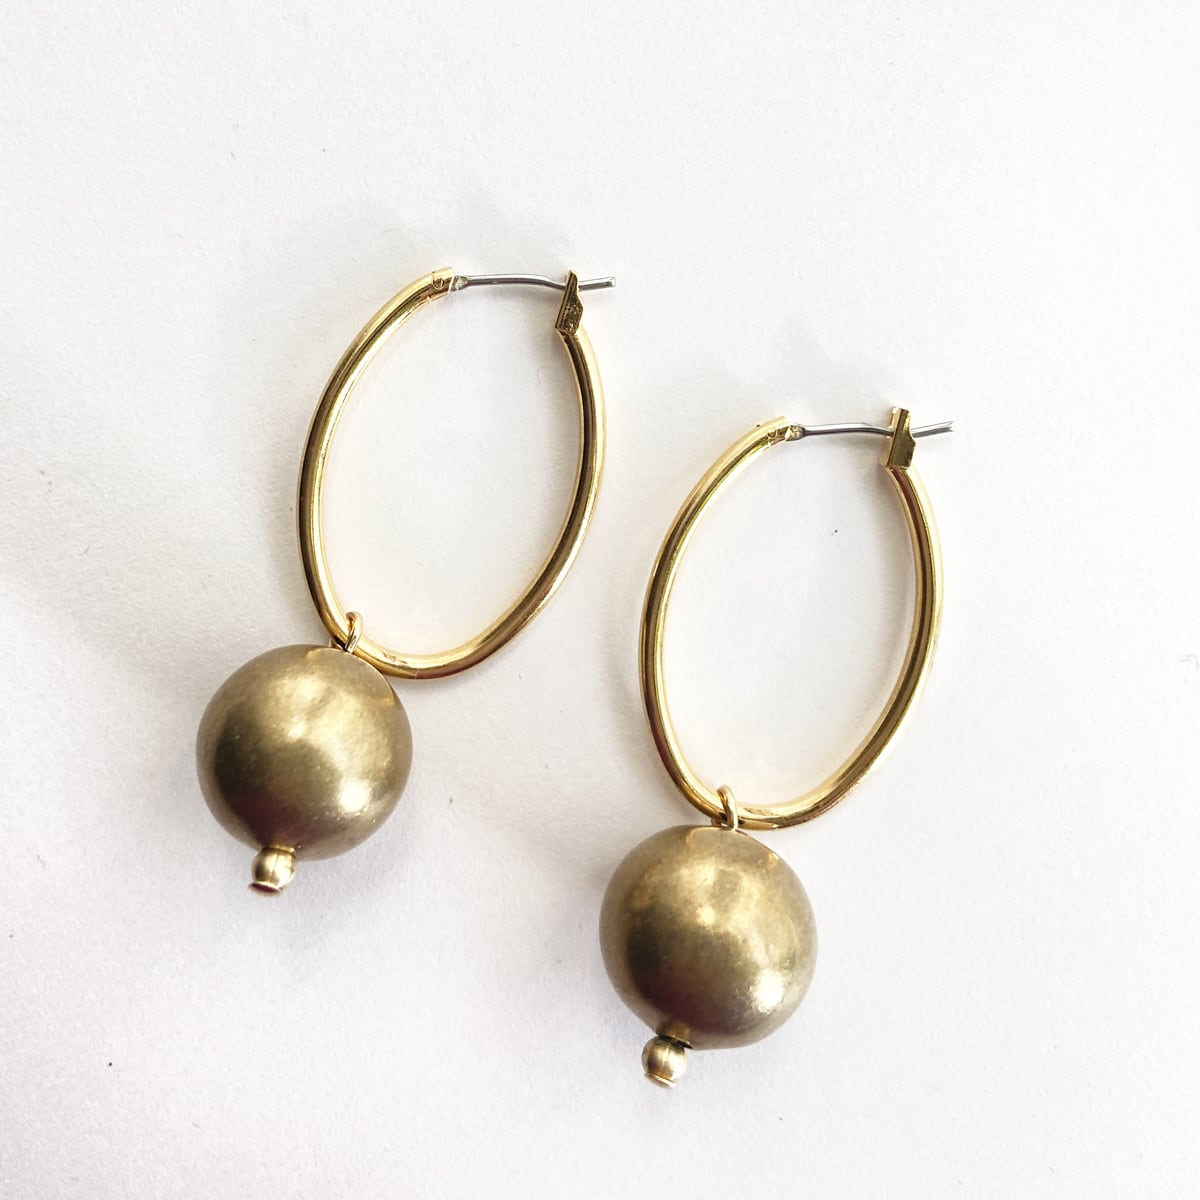 Vintage hoops with ball B-081